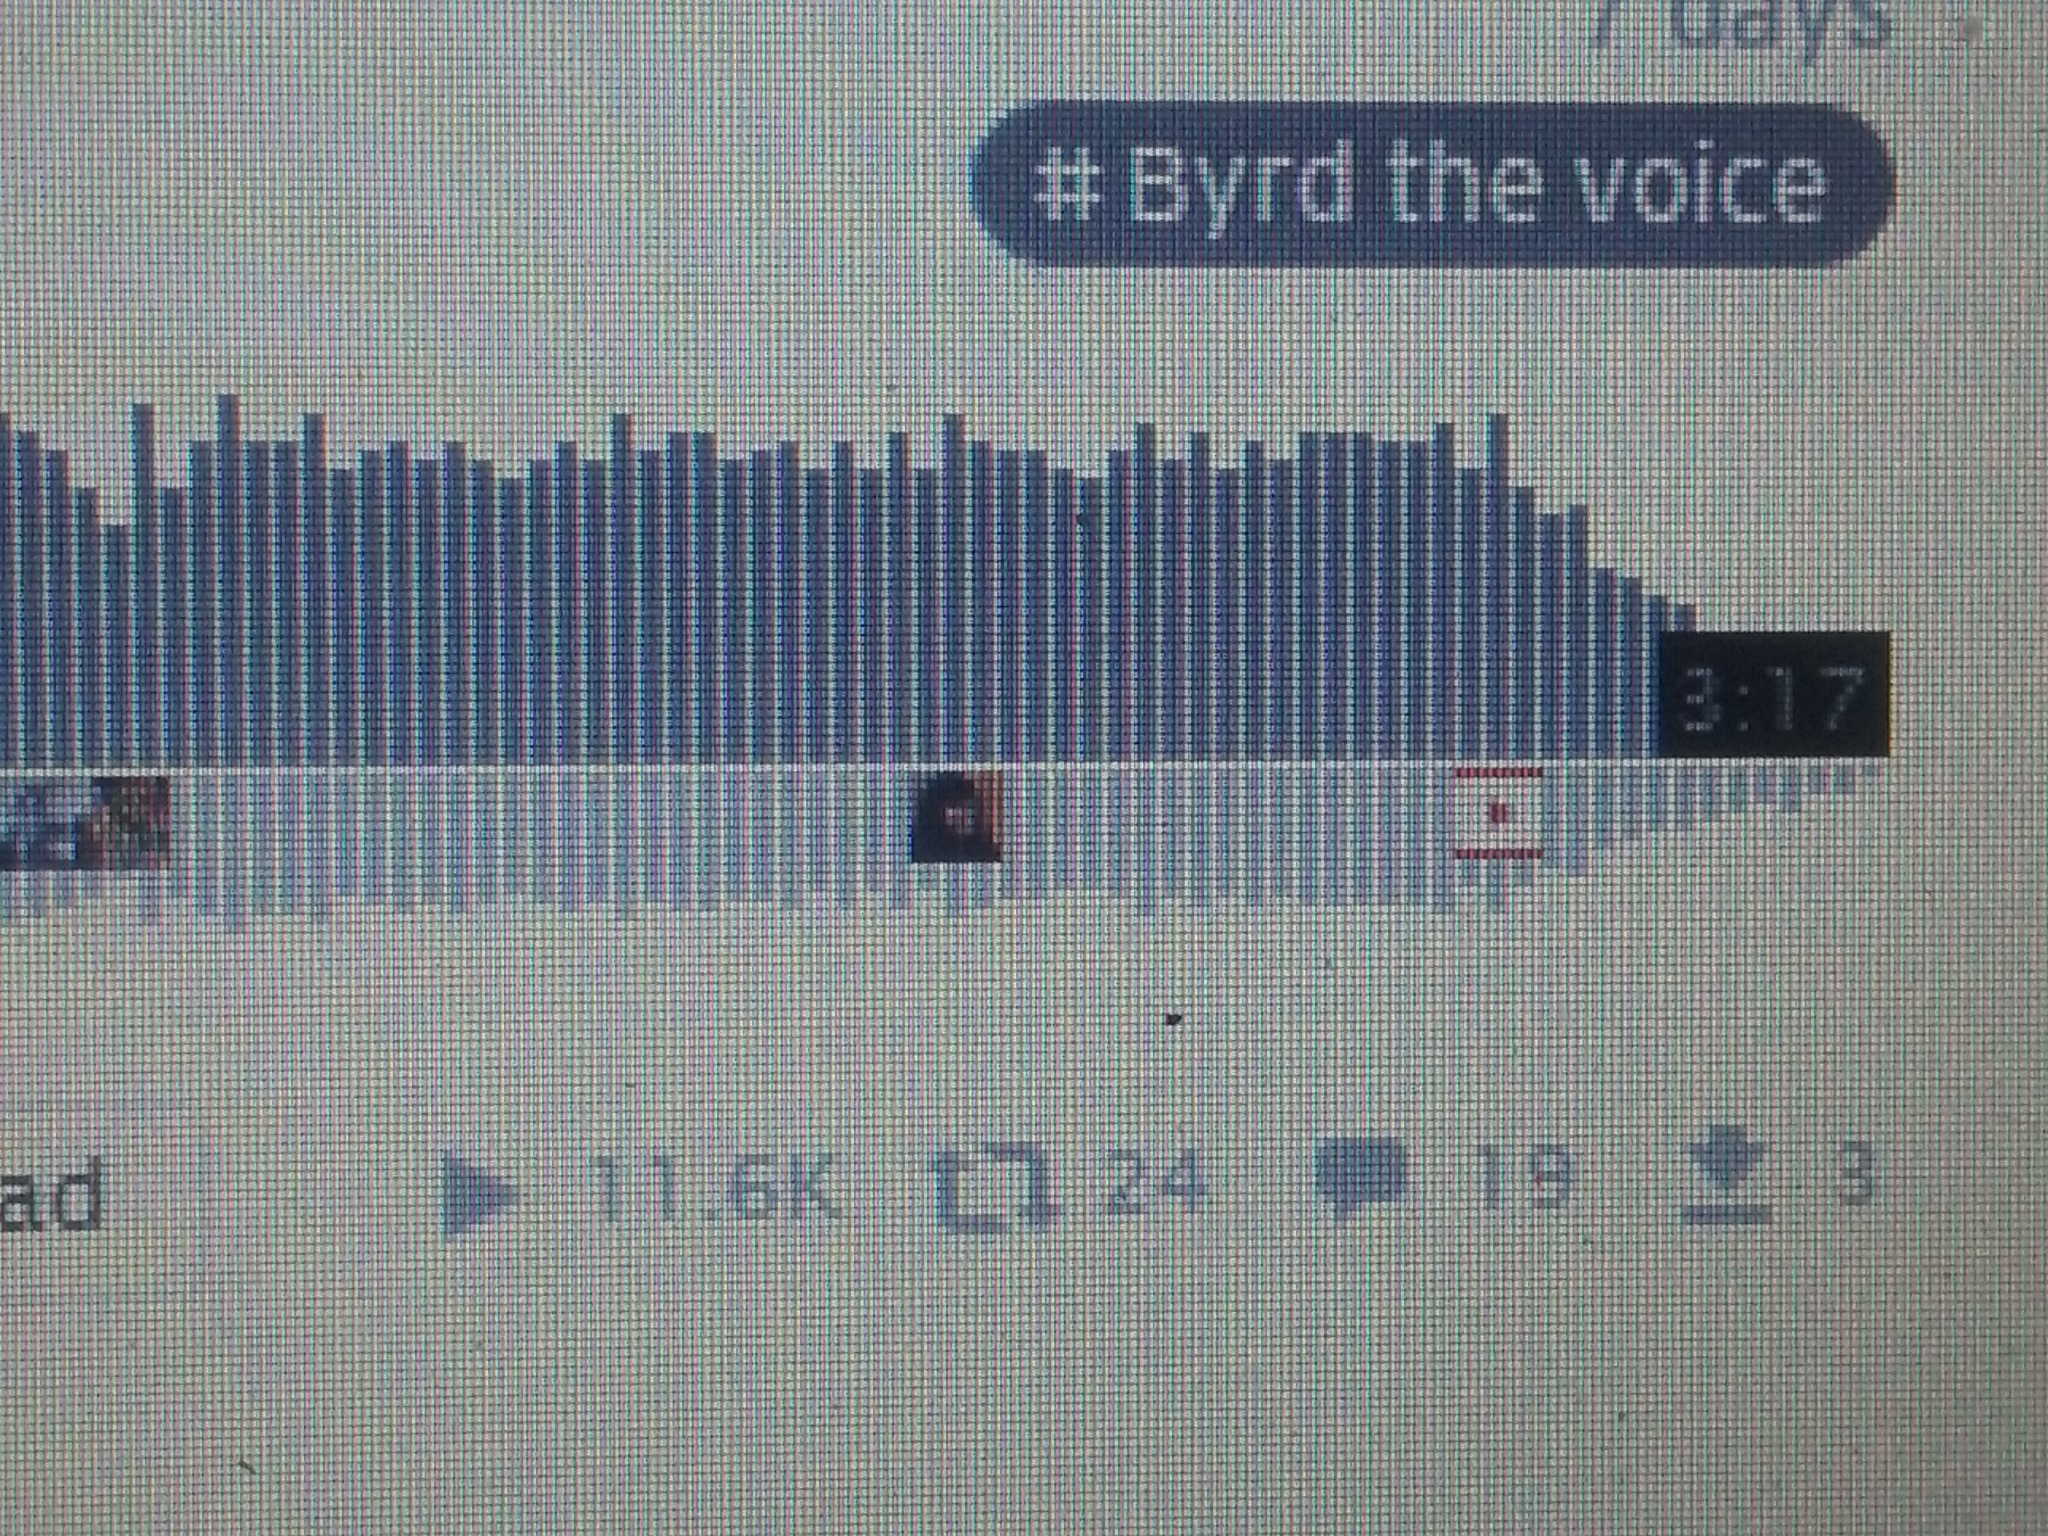 help you get a real 5000 to 10000 plays on a soundcloud track